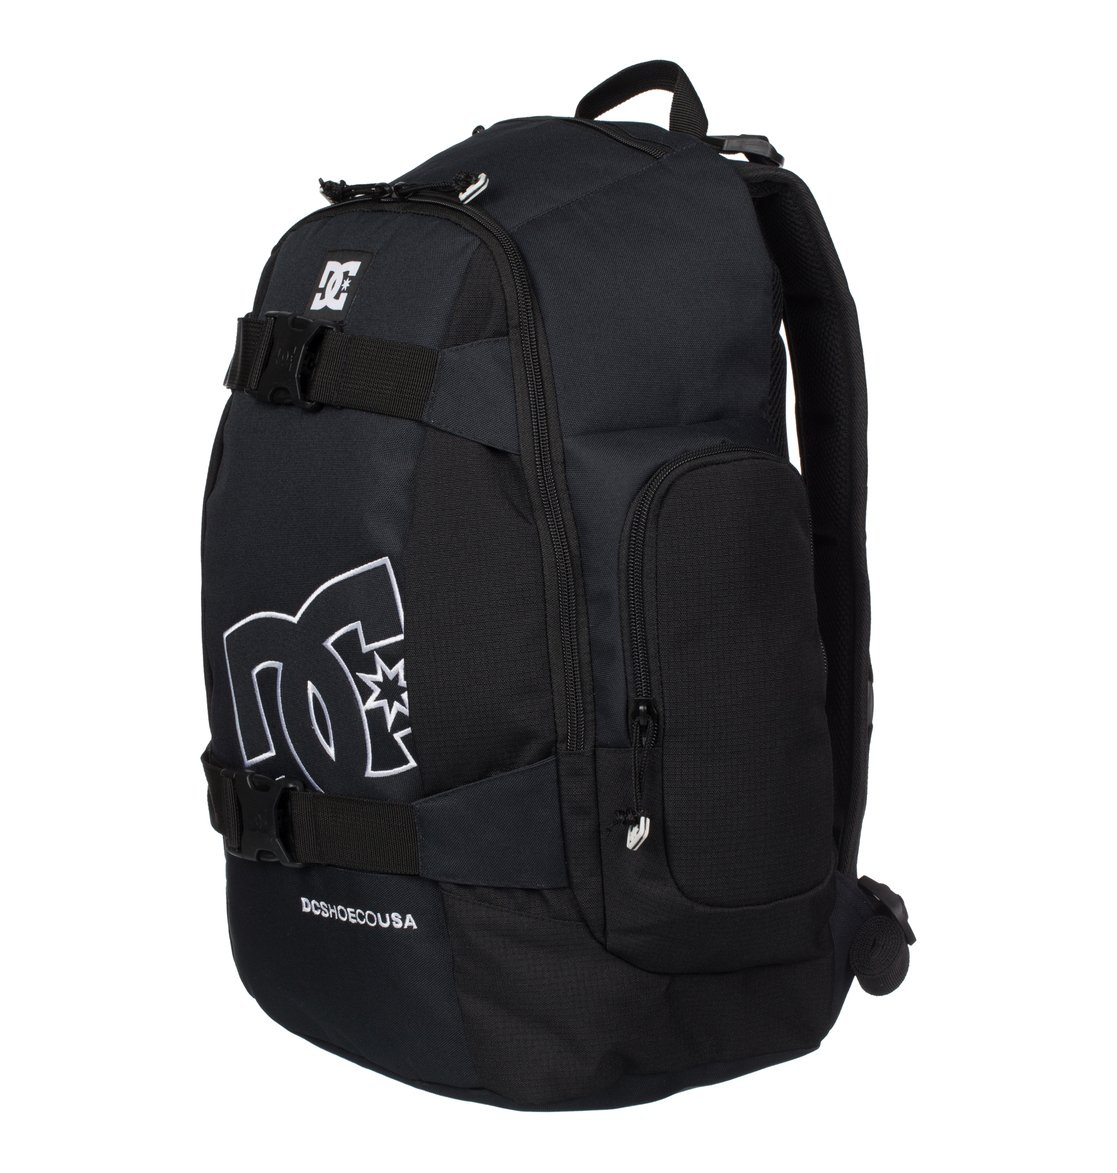 94af1e66823 1 Wolfbred Backpack 3153040101 DC Shoes